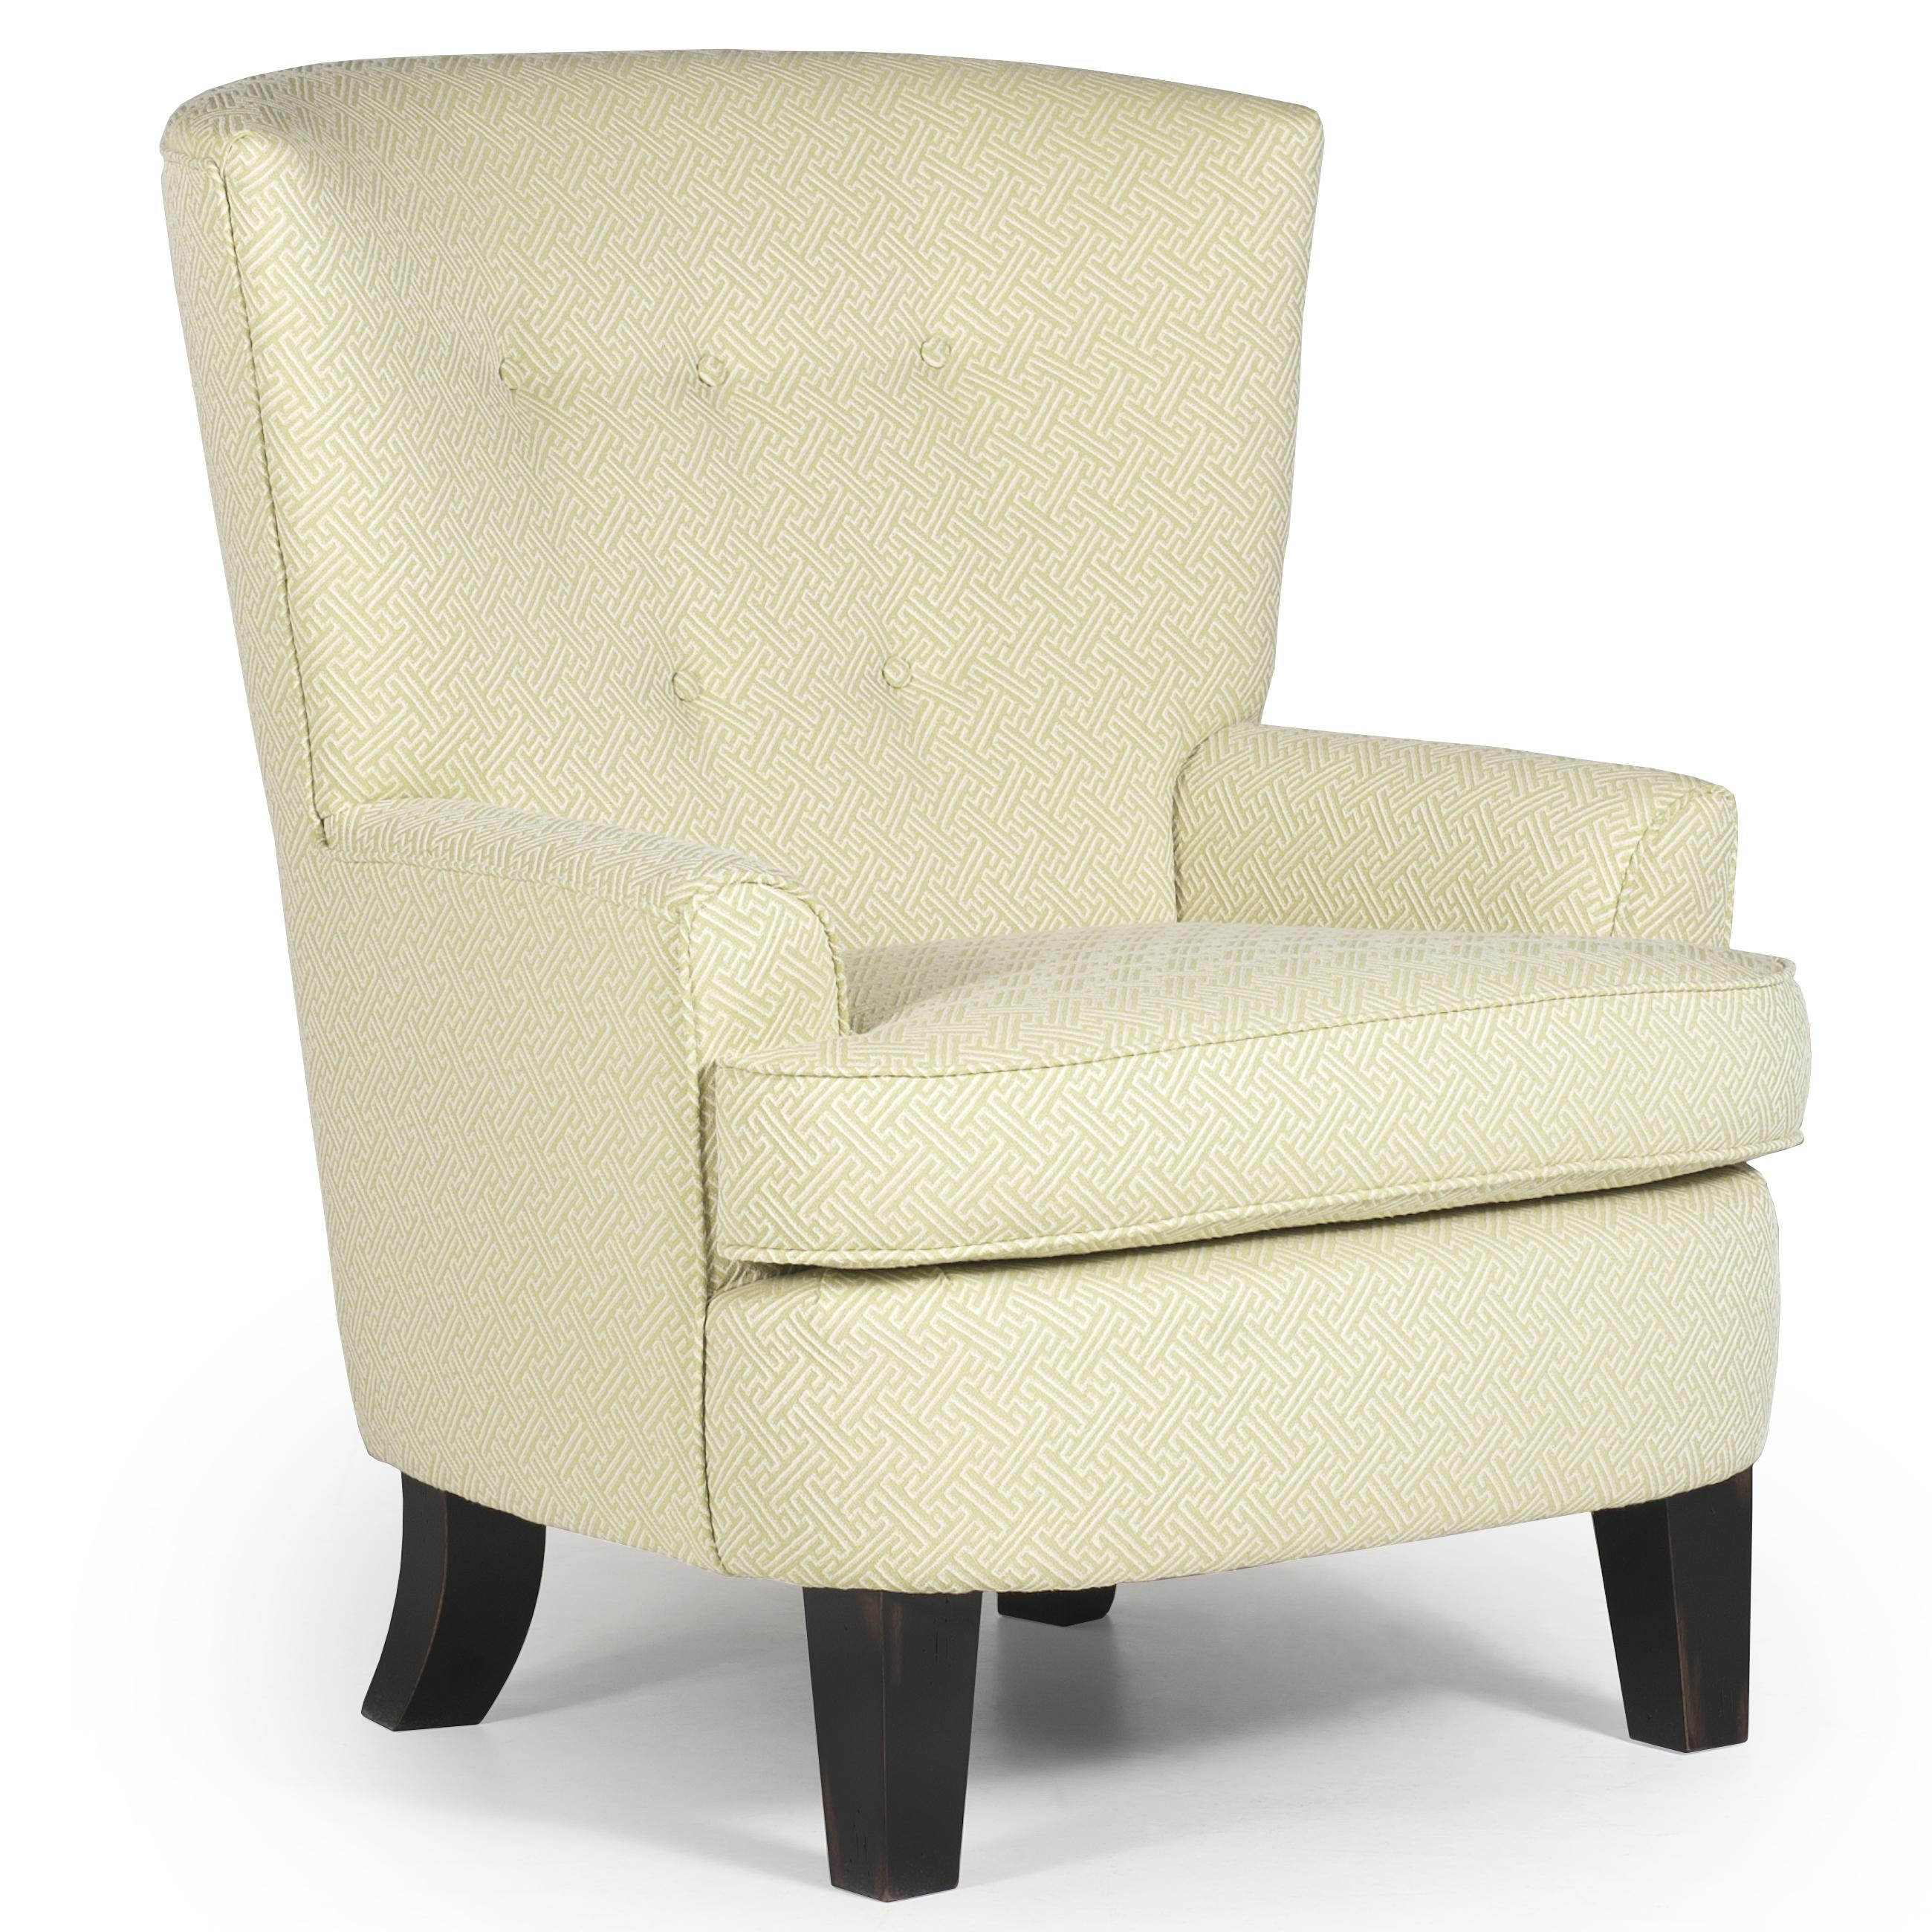 Best Home Furnishings Chairs - Accent Luis Upholstered Chair - Item Number: 7120AB